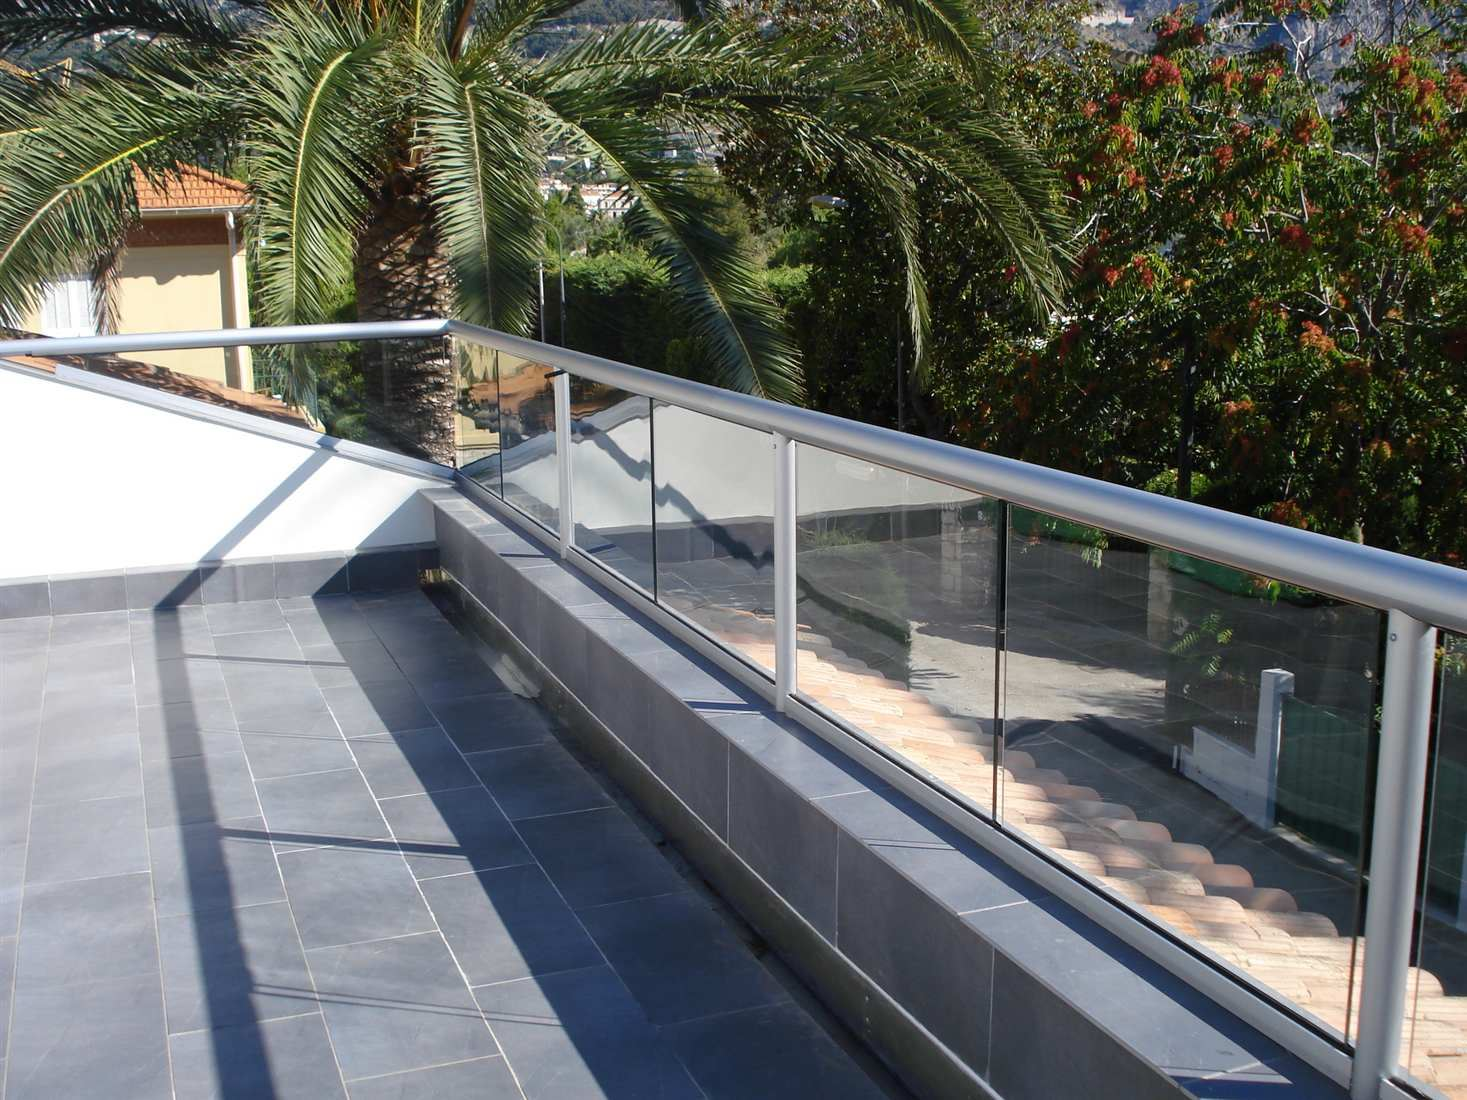 Silver Orbit Glass Balustrade looking over a sunny garden with a palm tree